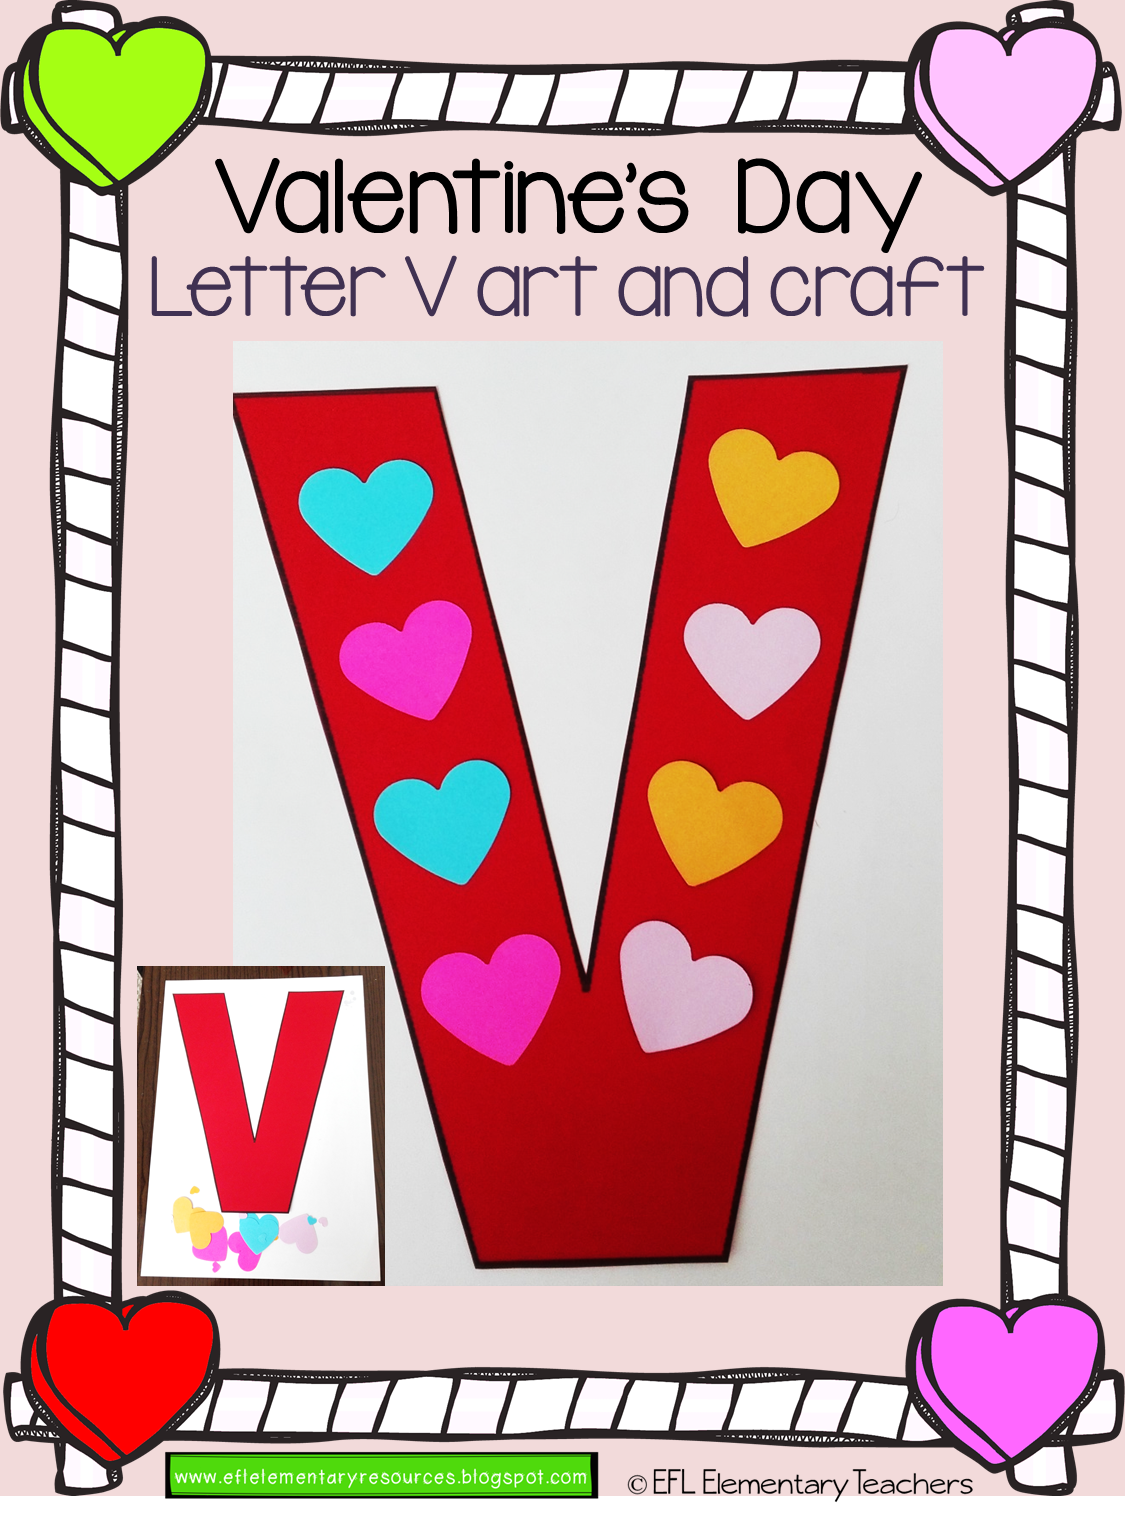 Esl efl teachers valentine. Graph clipart preschool